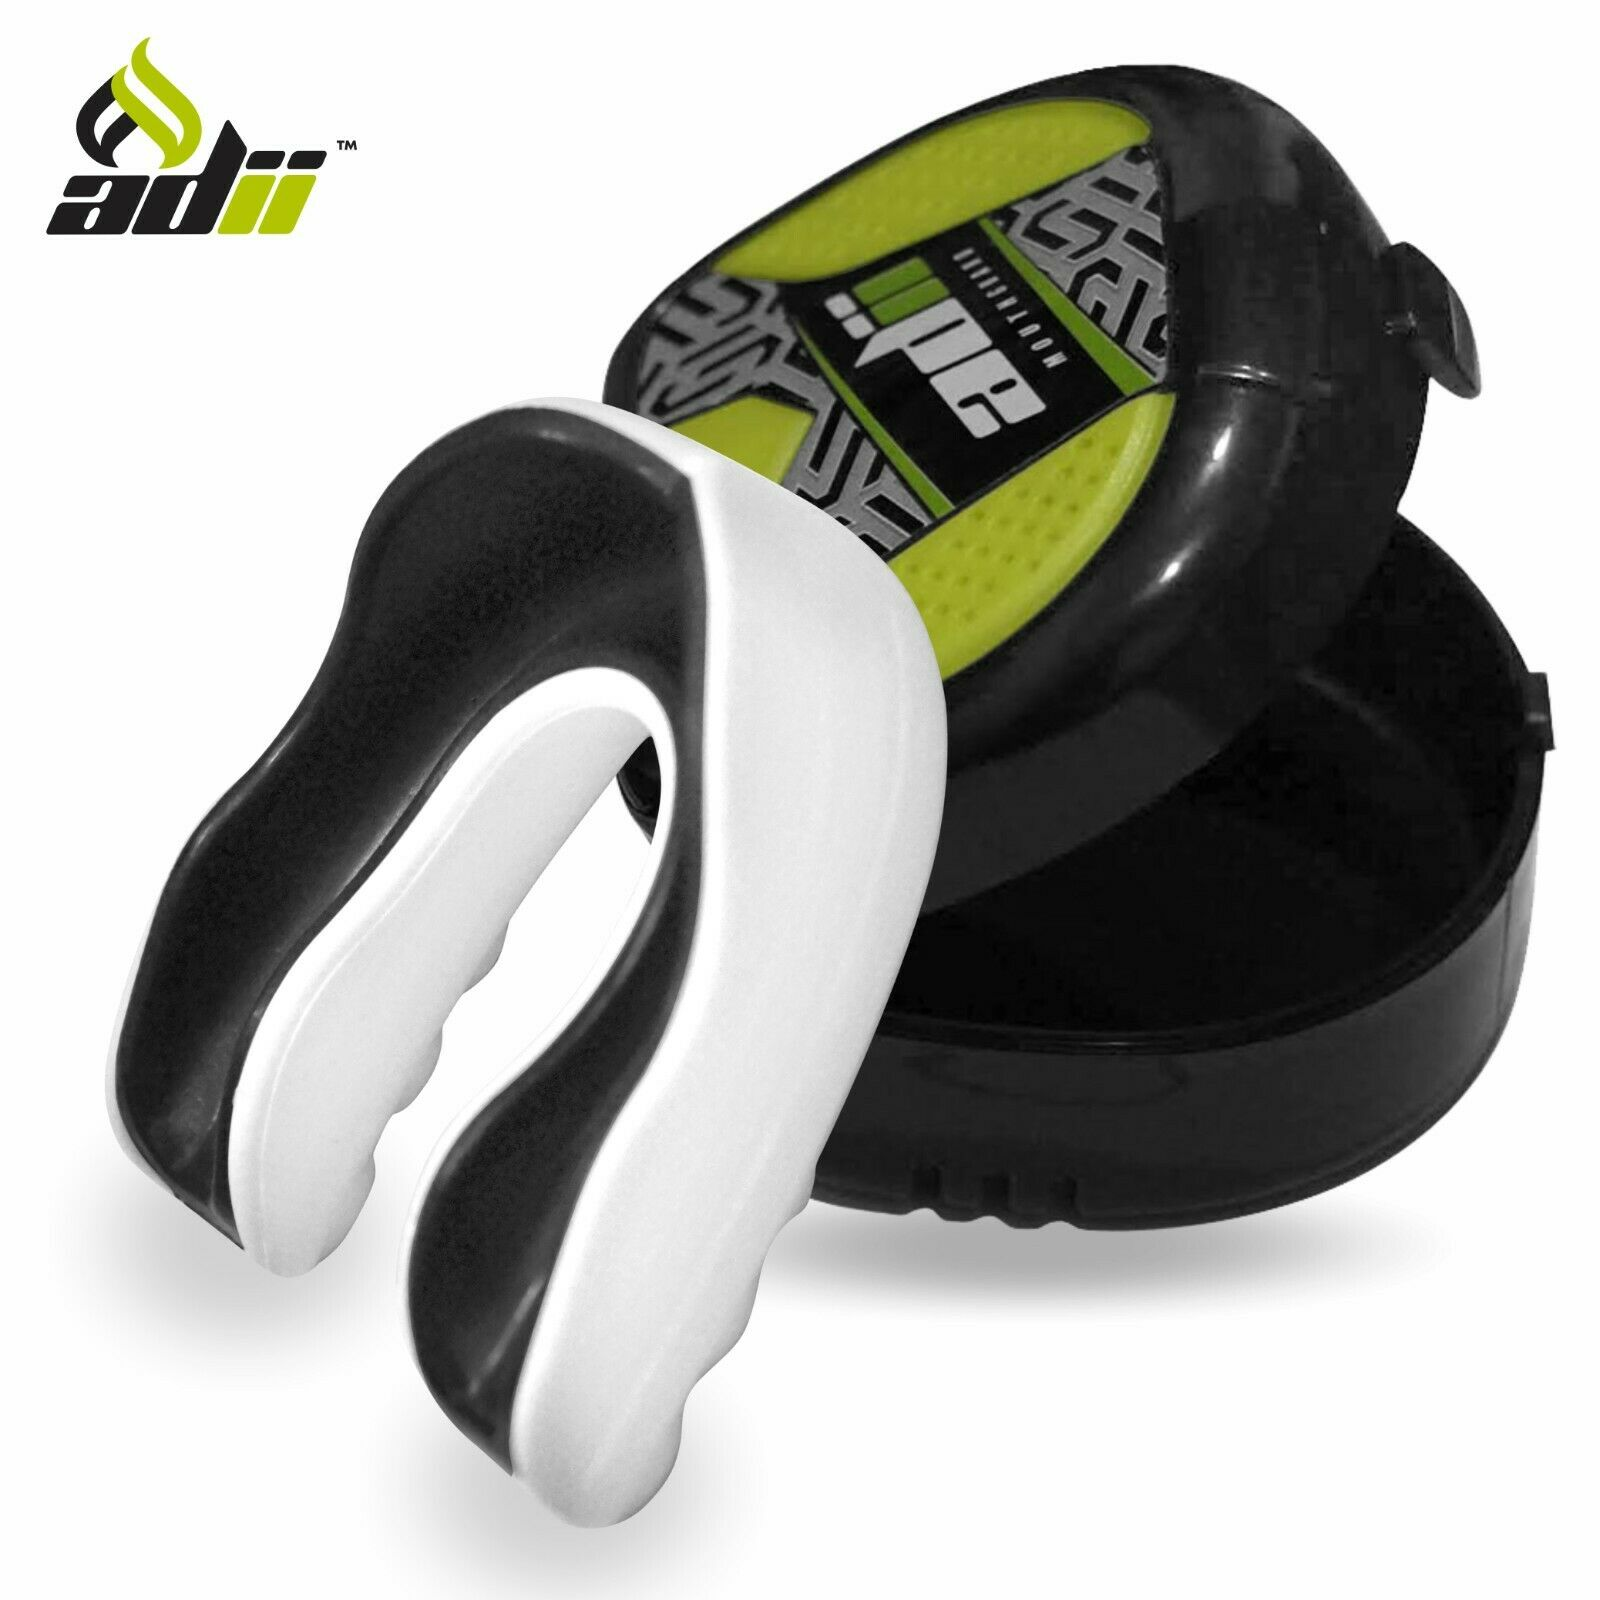 ADii™ Gel Mouth Guard Teeth Grinding Boxing Sports Gym Mou